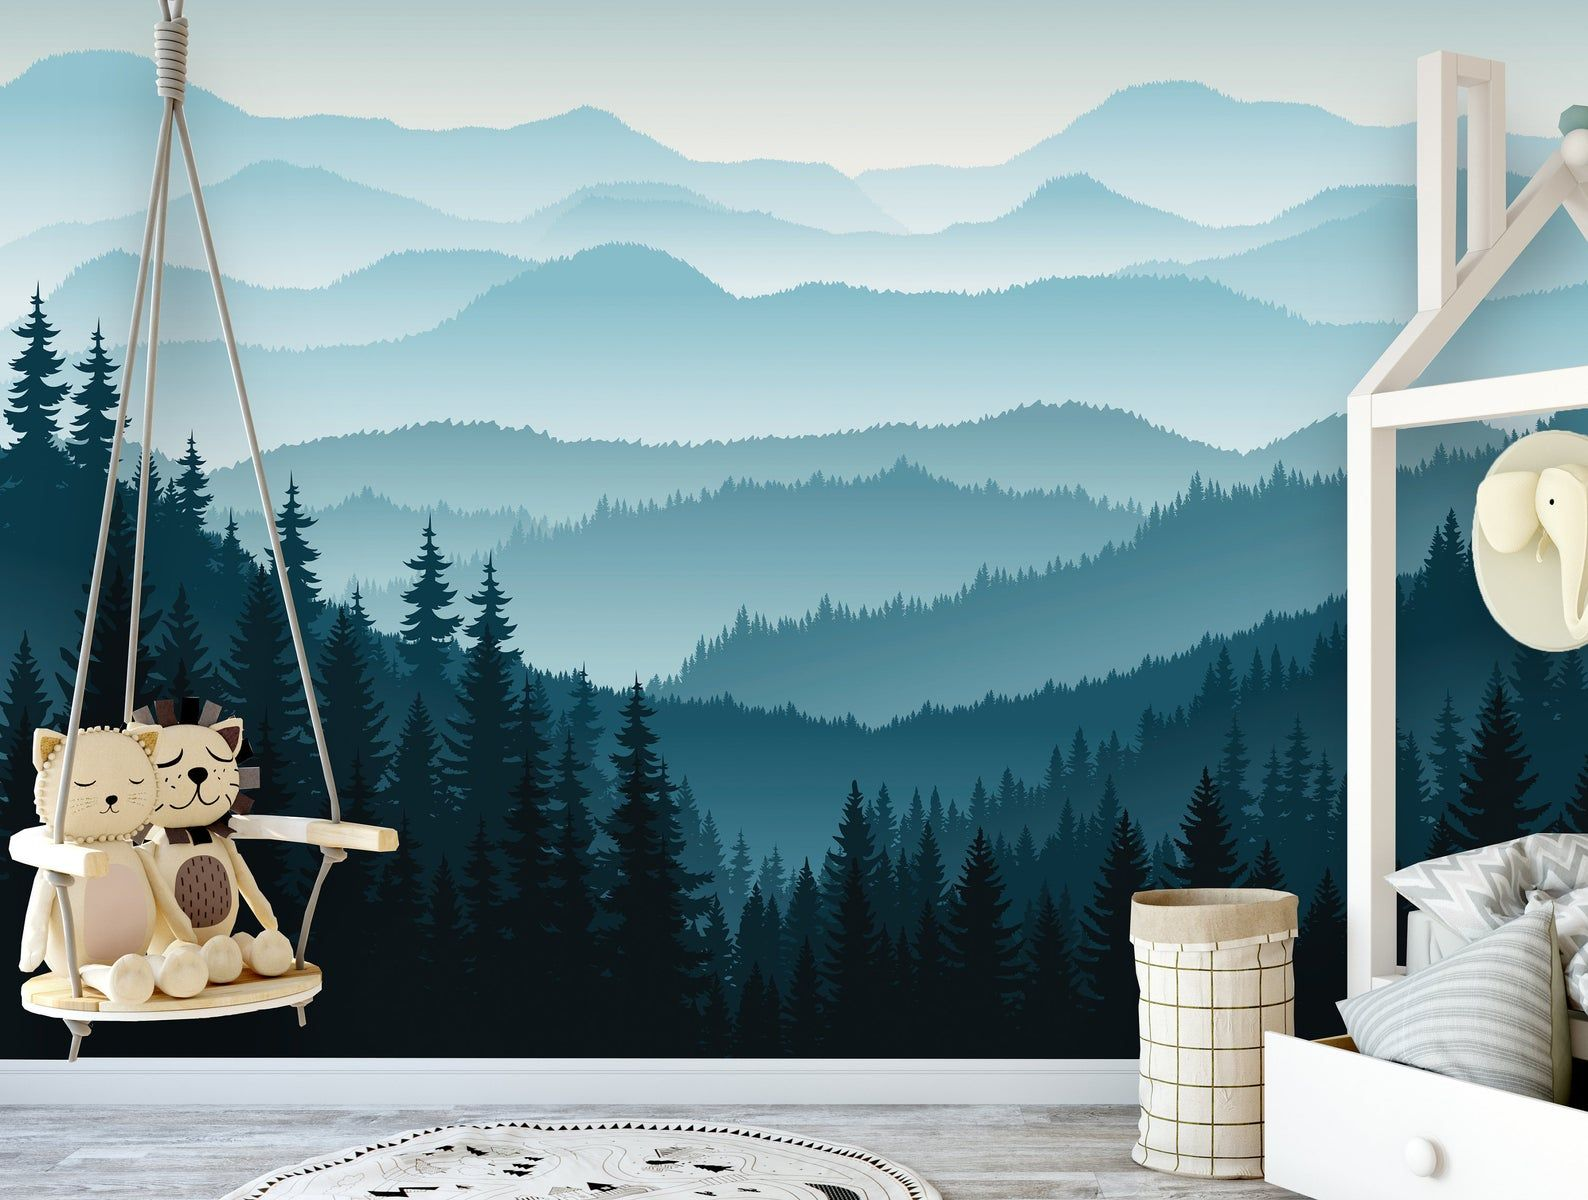 Removable Peel 'n Stick Wallpaper, SelfAdhesive Wall